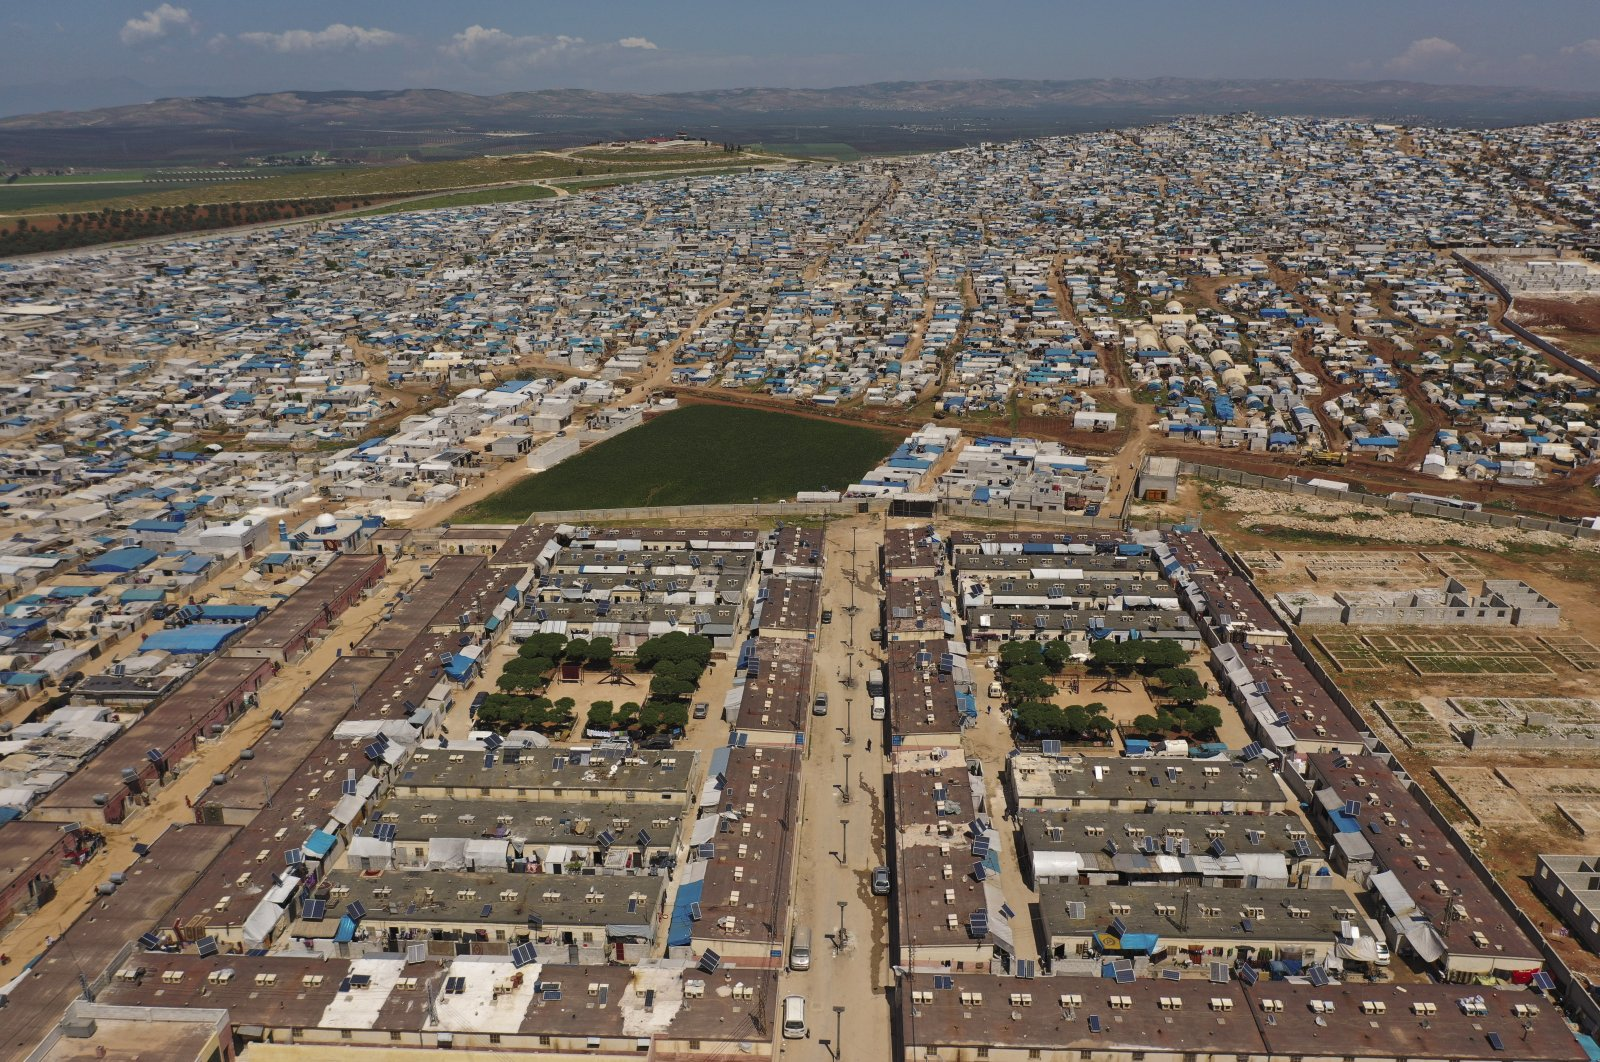 A large refugee camp on the Syrian side of the border with Turkey, near the town of Atma, in Idlib province, Syria, April 19, 2021. (AP Photo)